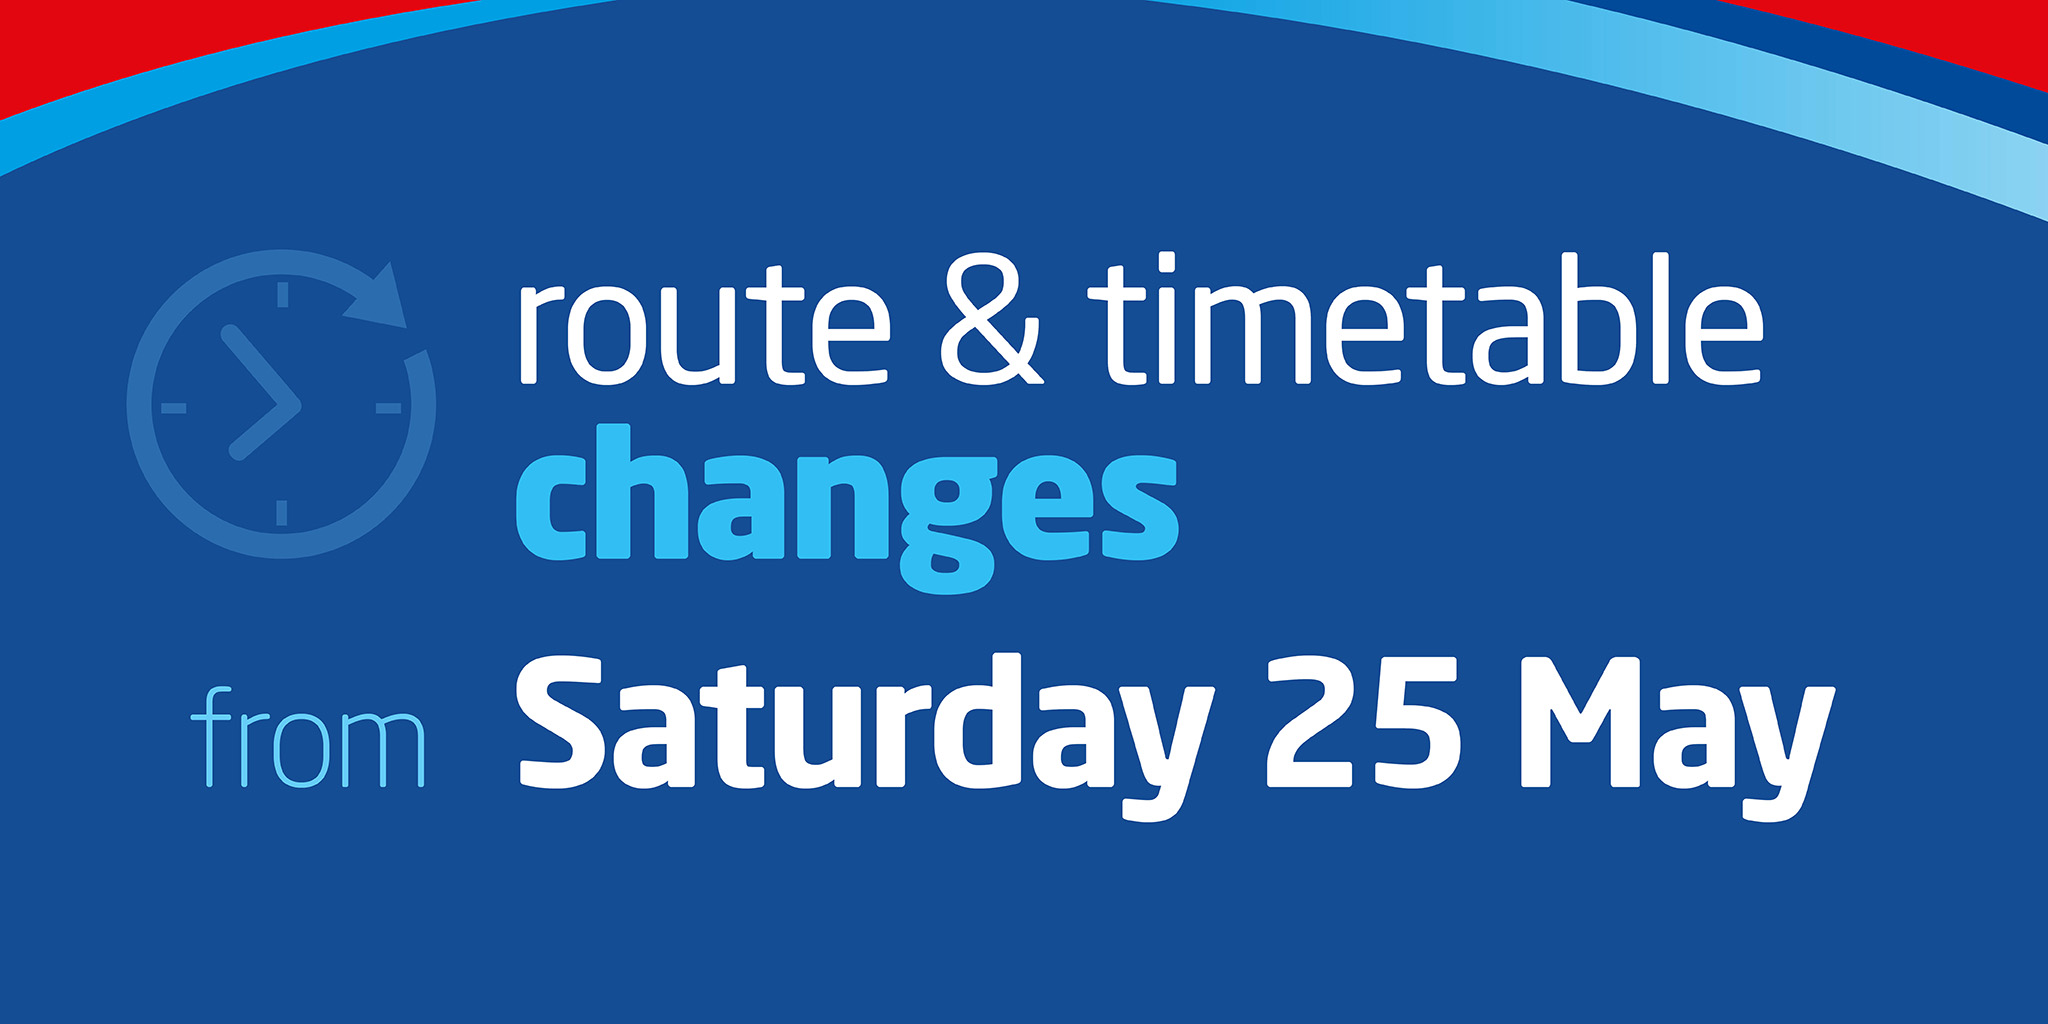 Text-based image reading 'route and timetable changes from Saturday 25th May'